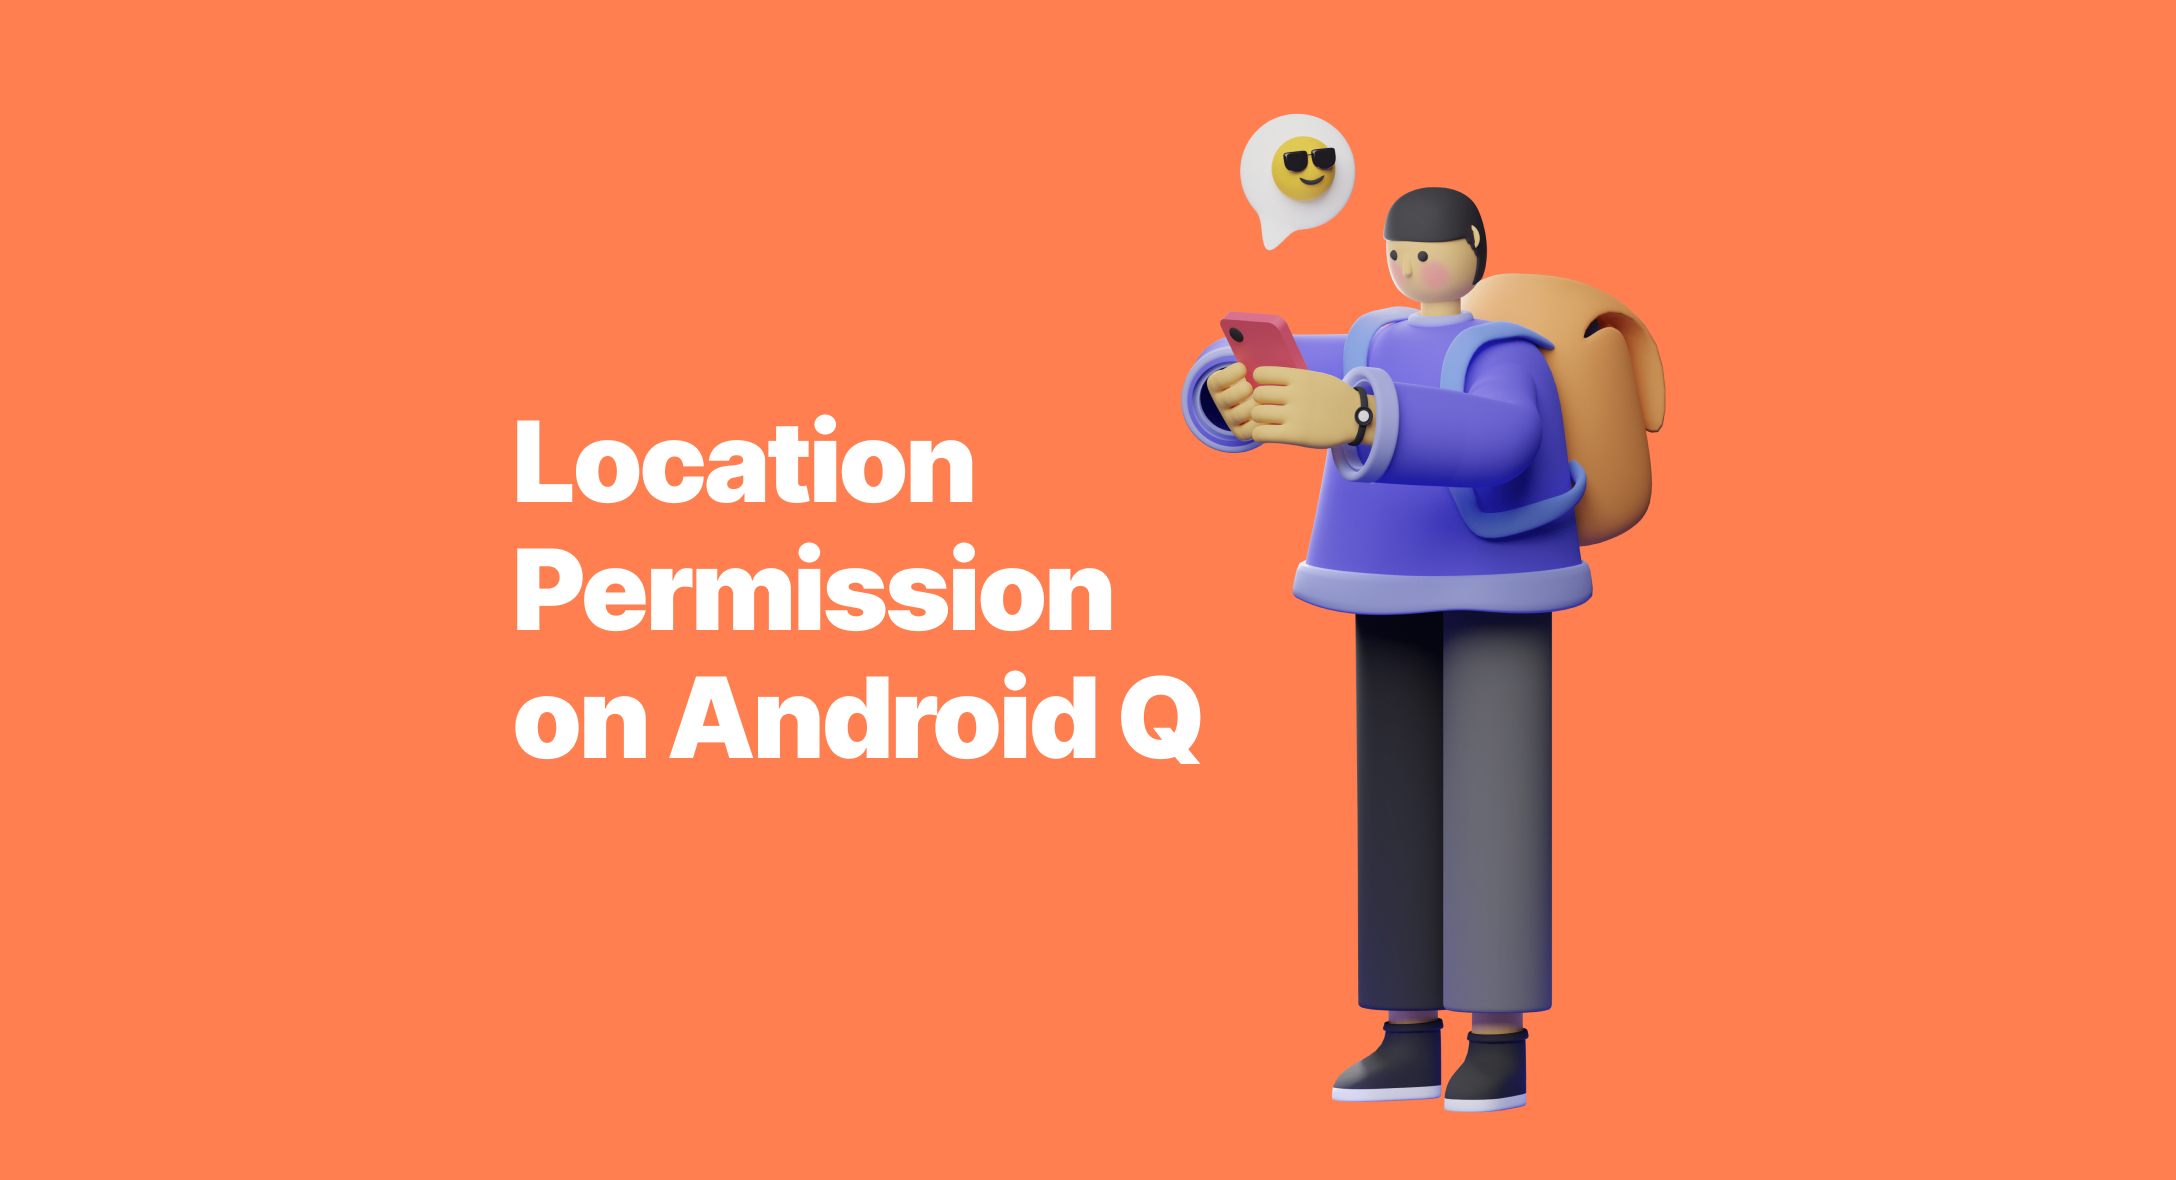 Get Location Permission on Android Q